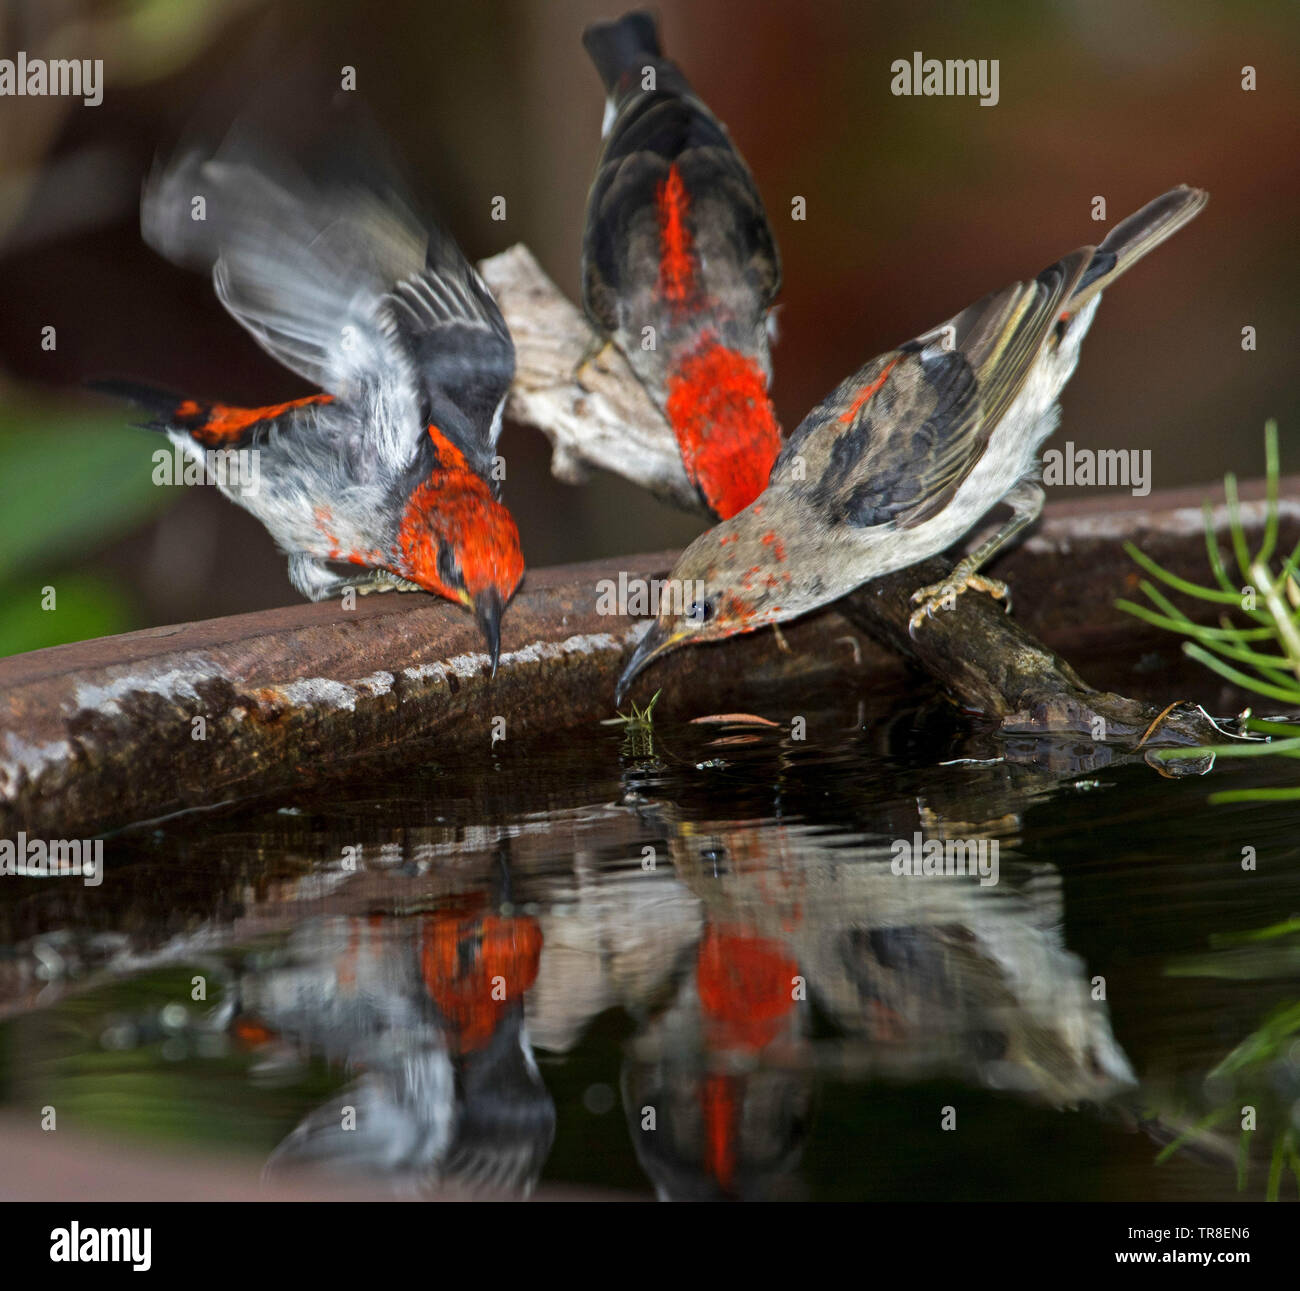 Group of three stunning red and black male Australian Scarlet Honeyeaters, Myzomela sanguinolenta, drinking and reflected in water of garden bird bath - Stock Image